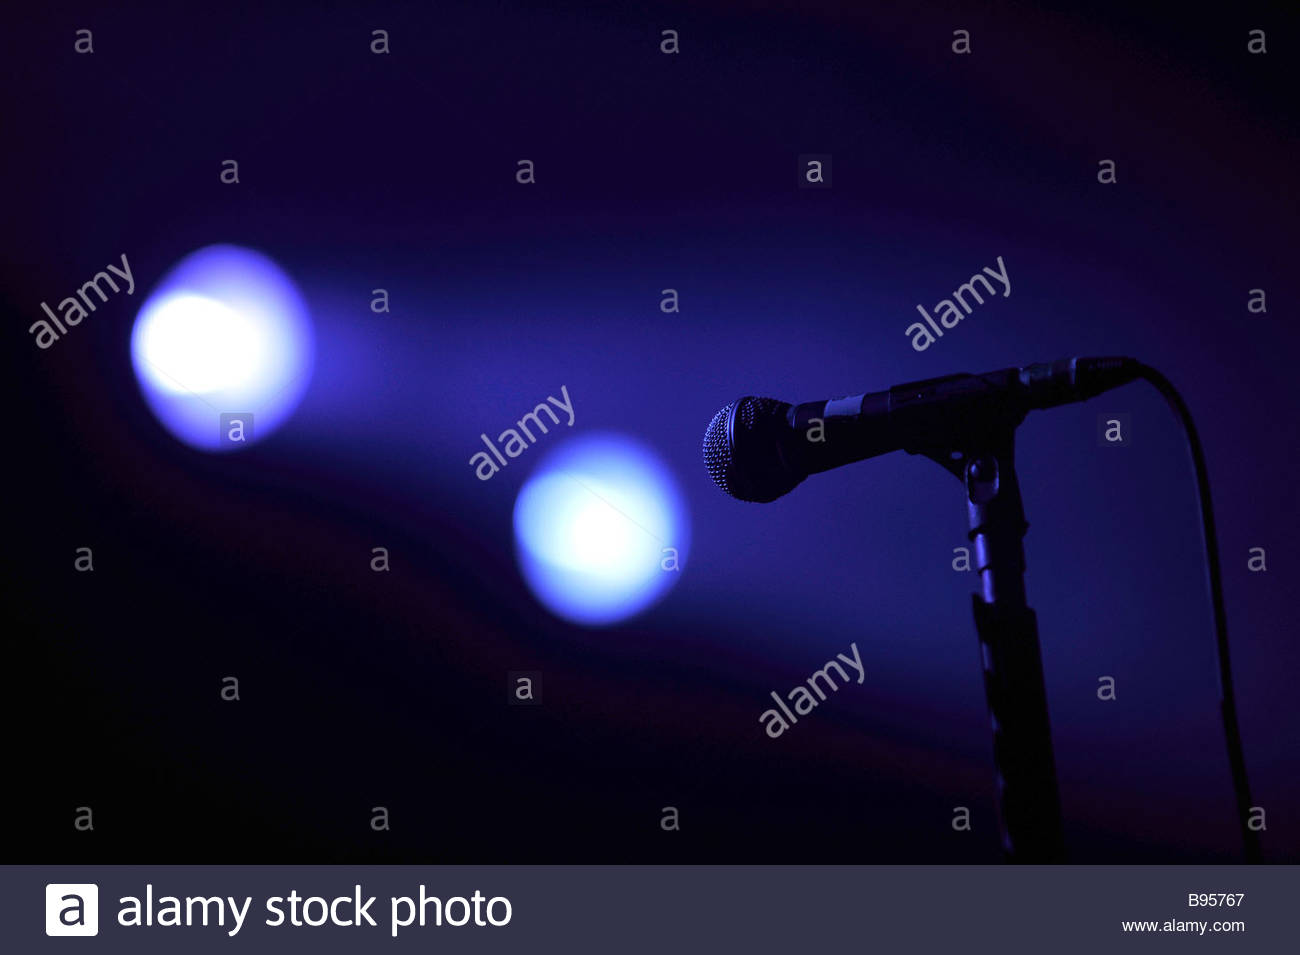 A mic and stage lights at a music gig uk - Stock Image